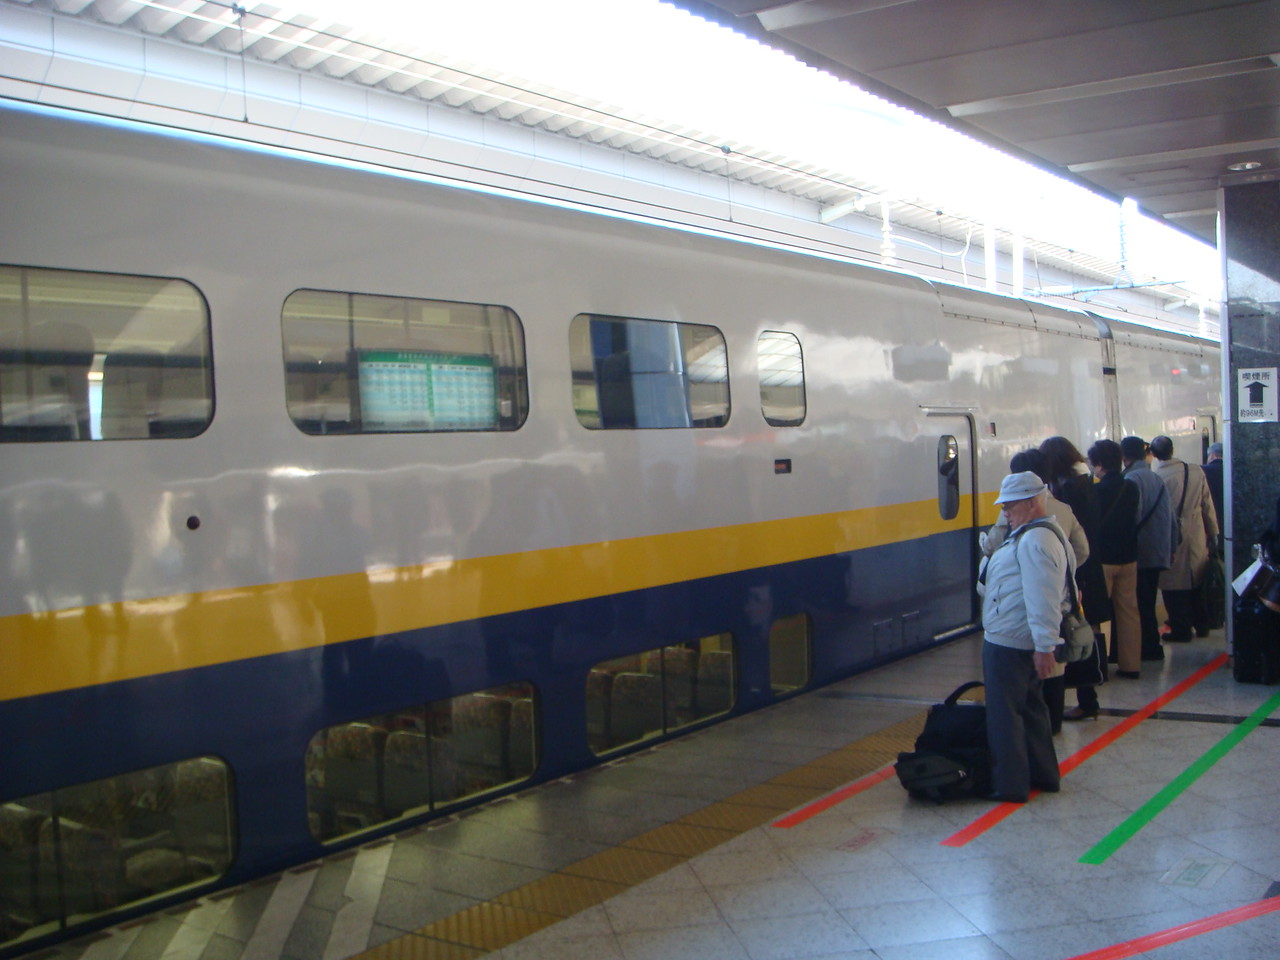 Locals and tourists waiting outside a bullet train in Tokyo, Japan